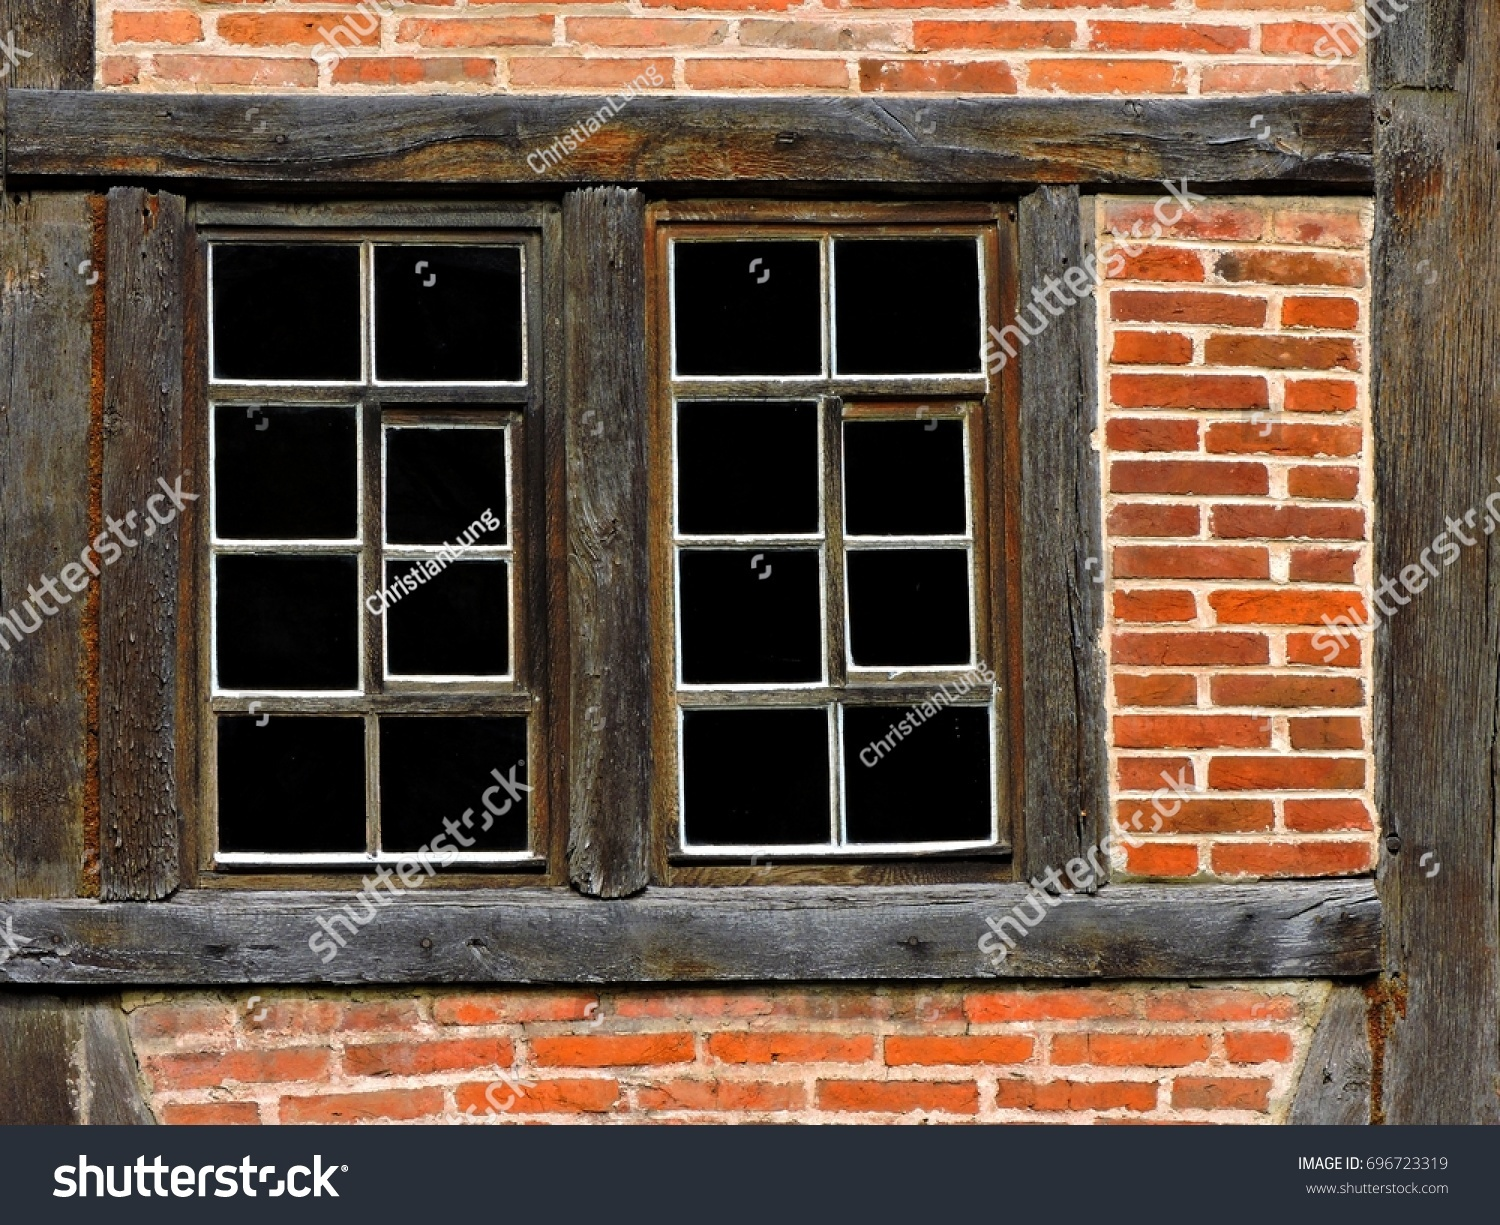 Old Wood Framed Windows On Old Stock Photo 696723319 - Shutterstock